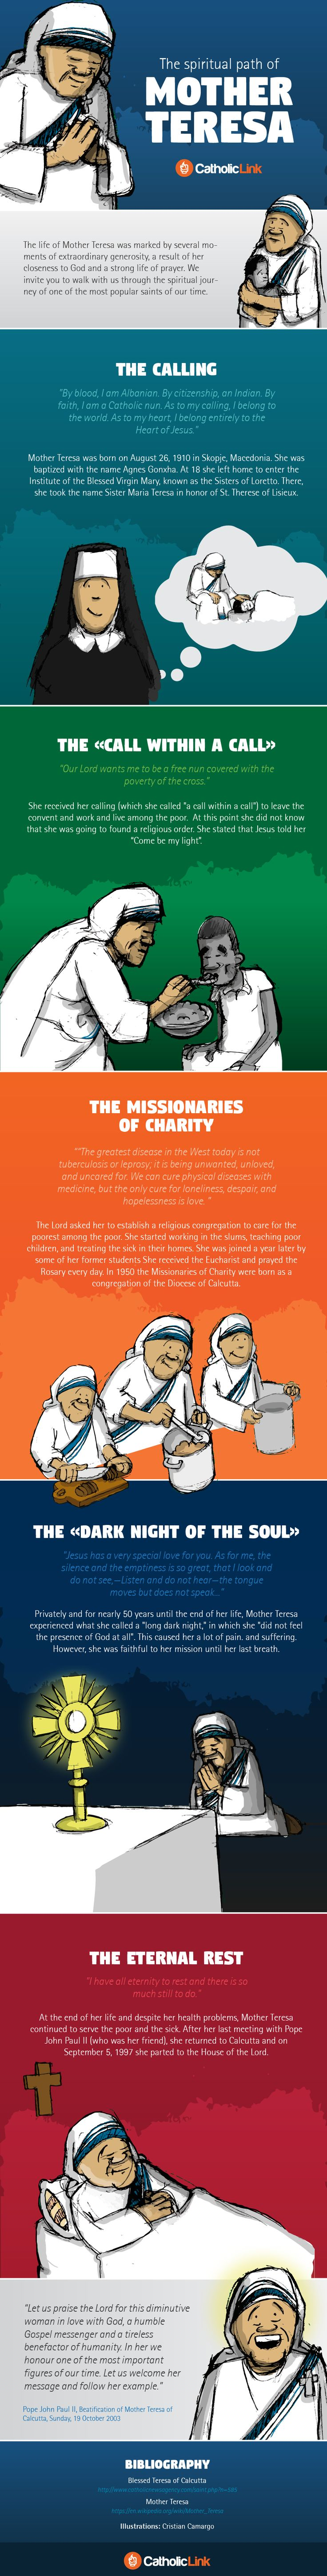 best ideas about biography of mother teresa infographic the life and holiness of mother teresa illustrated